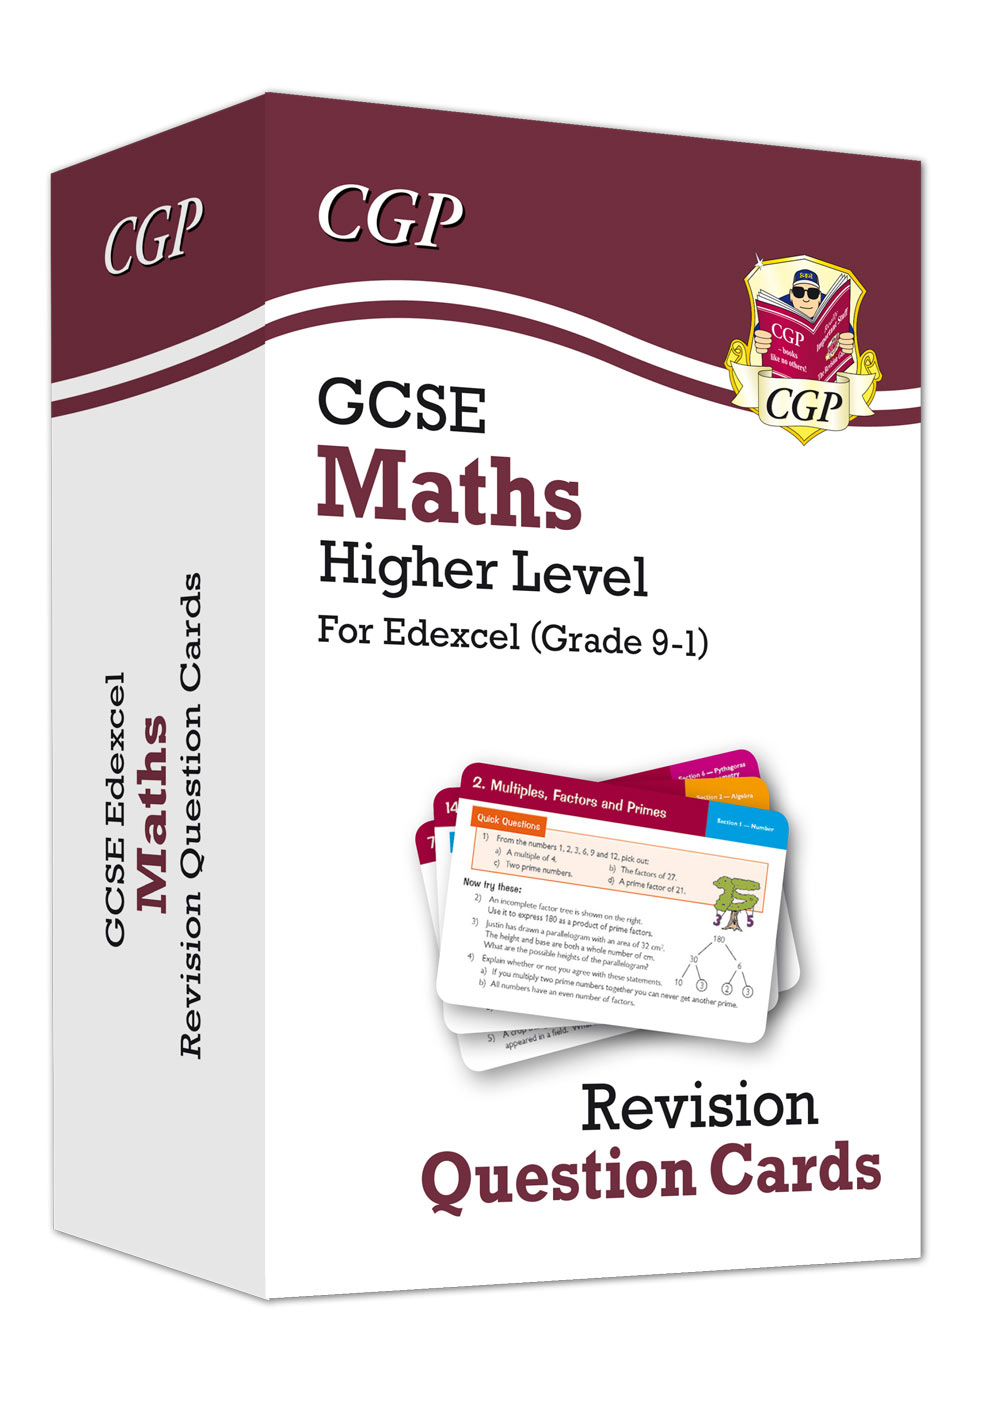 MXHF41 - New Grade 9-1 GCSE Maths Edexcel Revision Question Cards - Higher